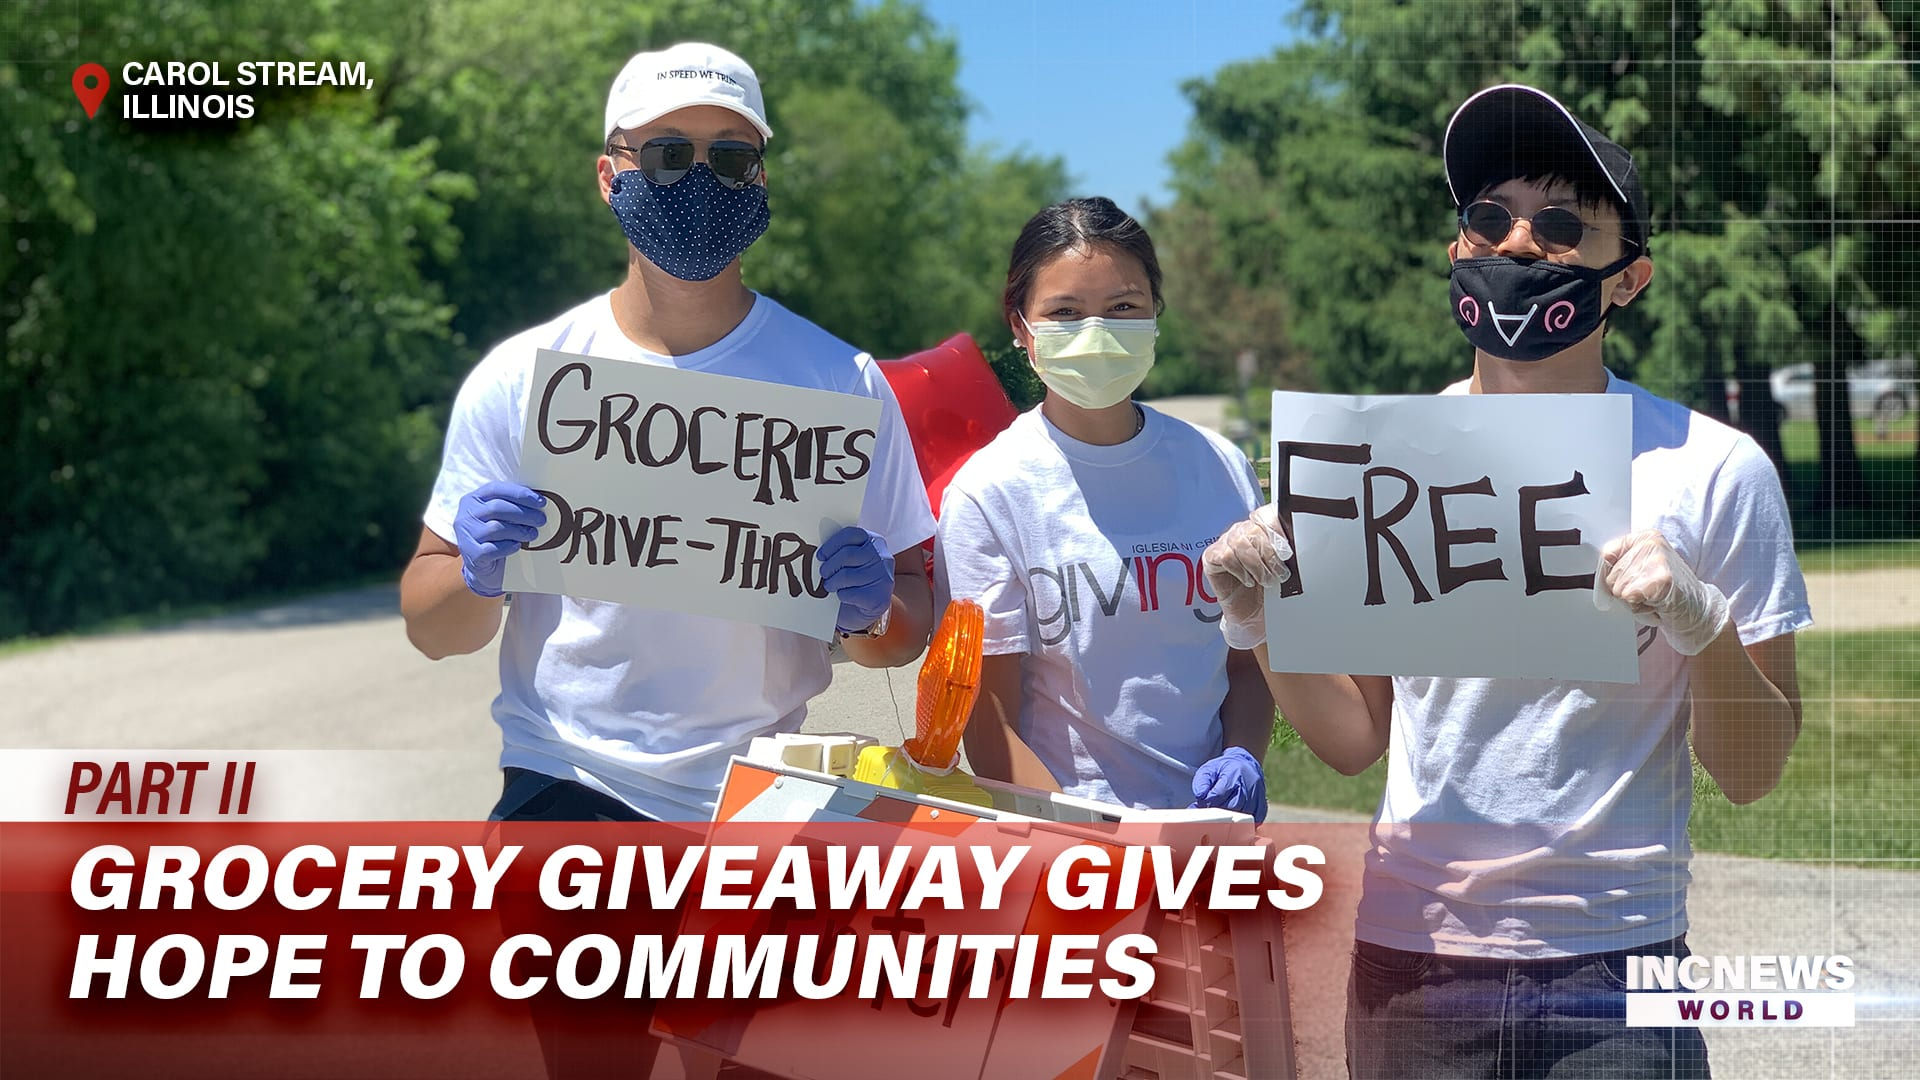 Grocery Giveaway Gives Hope to Communities